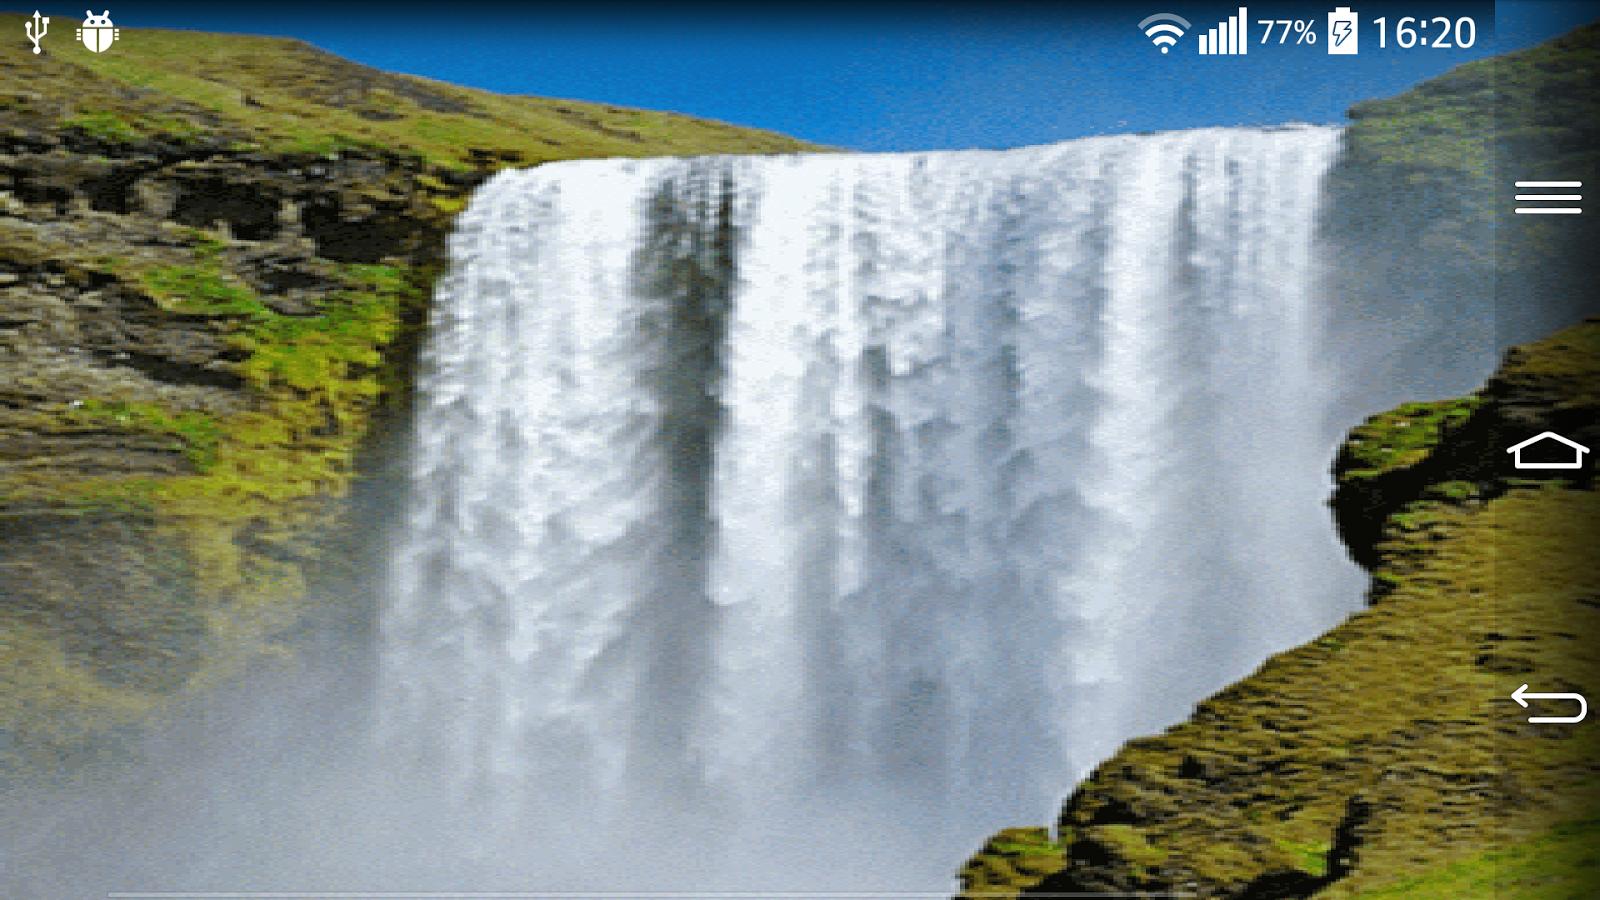 Live Niagara Falls Wallpaper Waterfall Live Wallpaper With Android Apps On Google Play